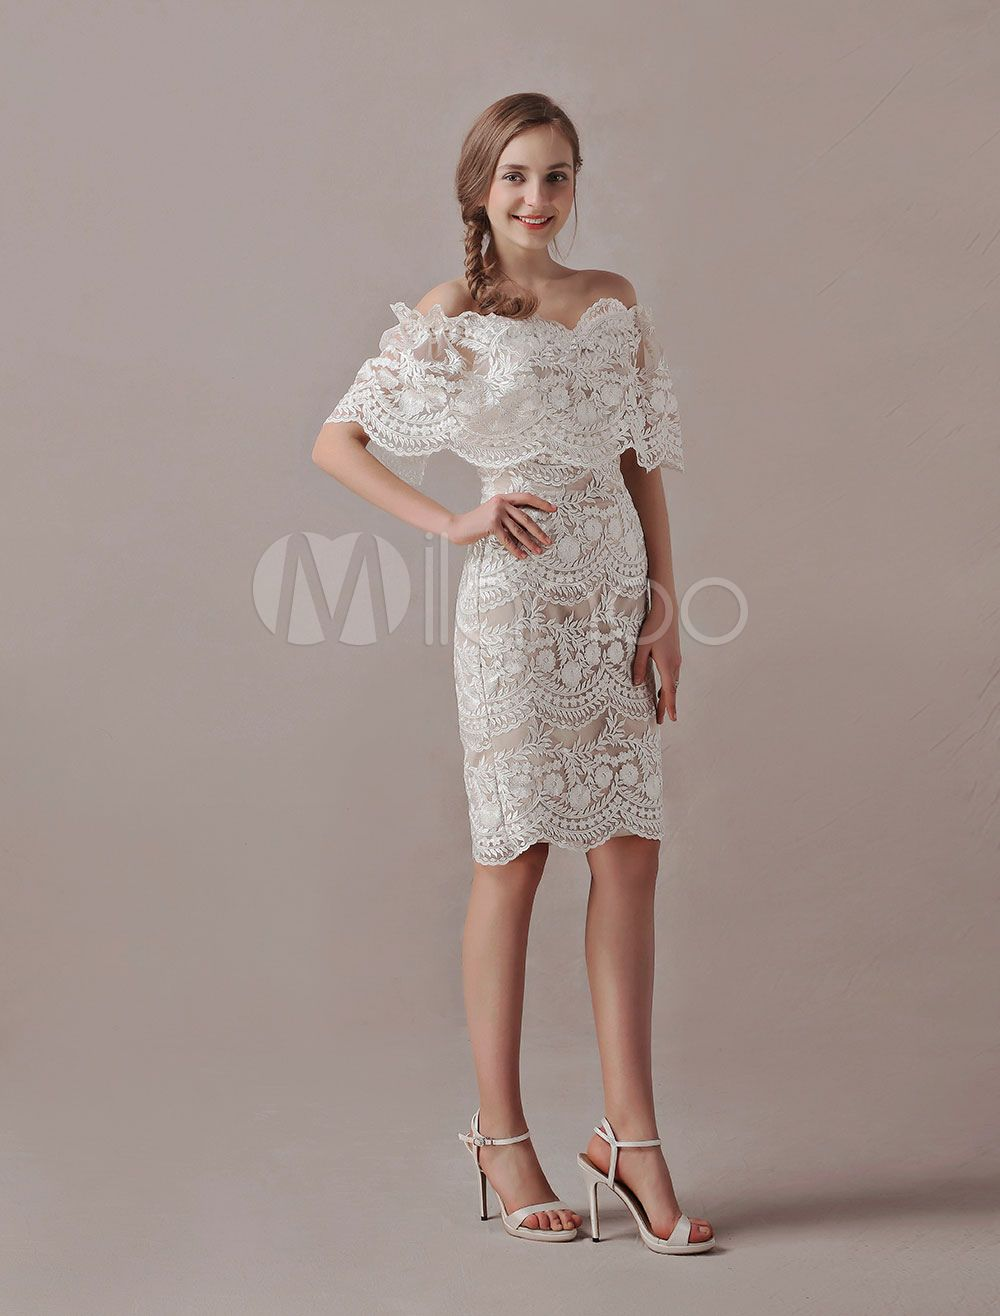 Boho wedding dresses short lace off the shoulder champagne sheath